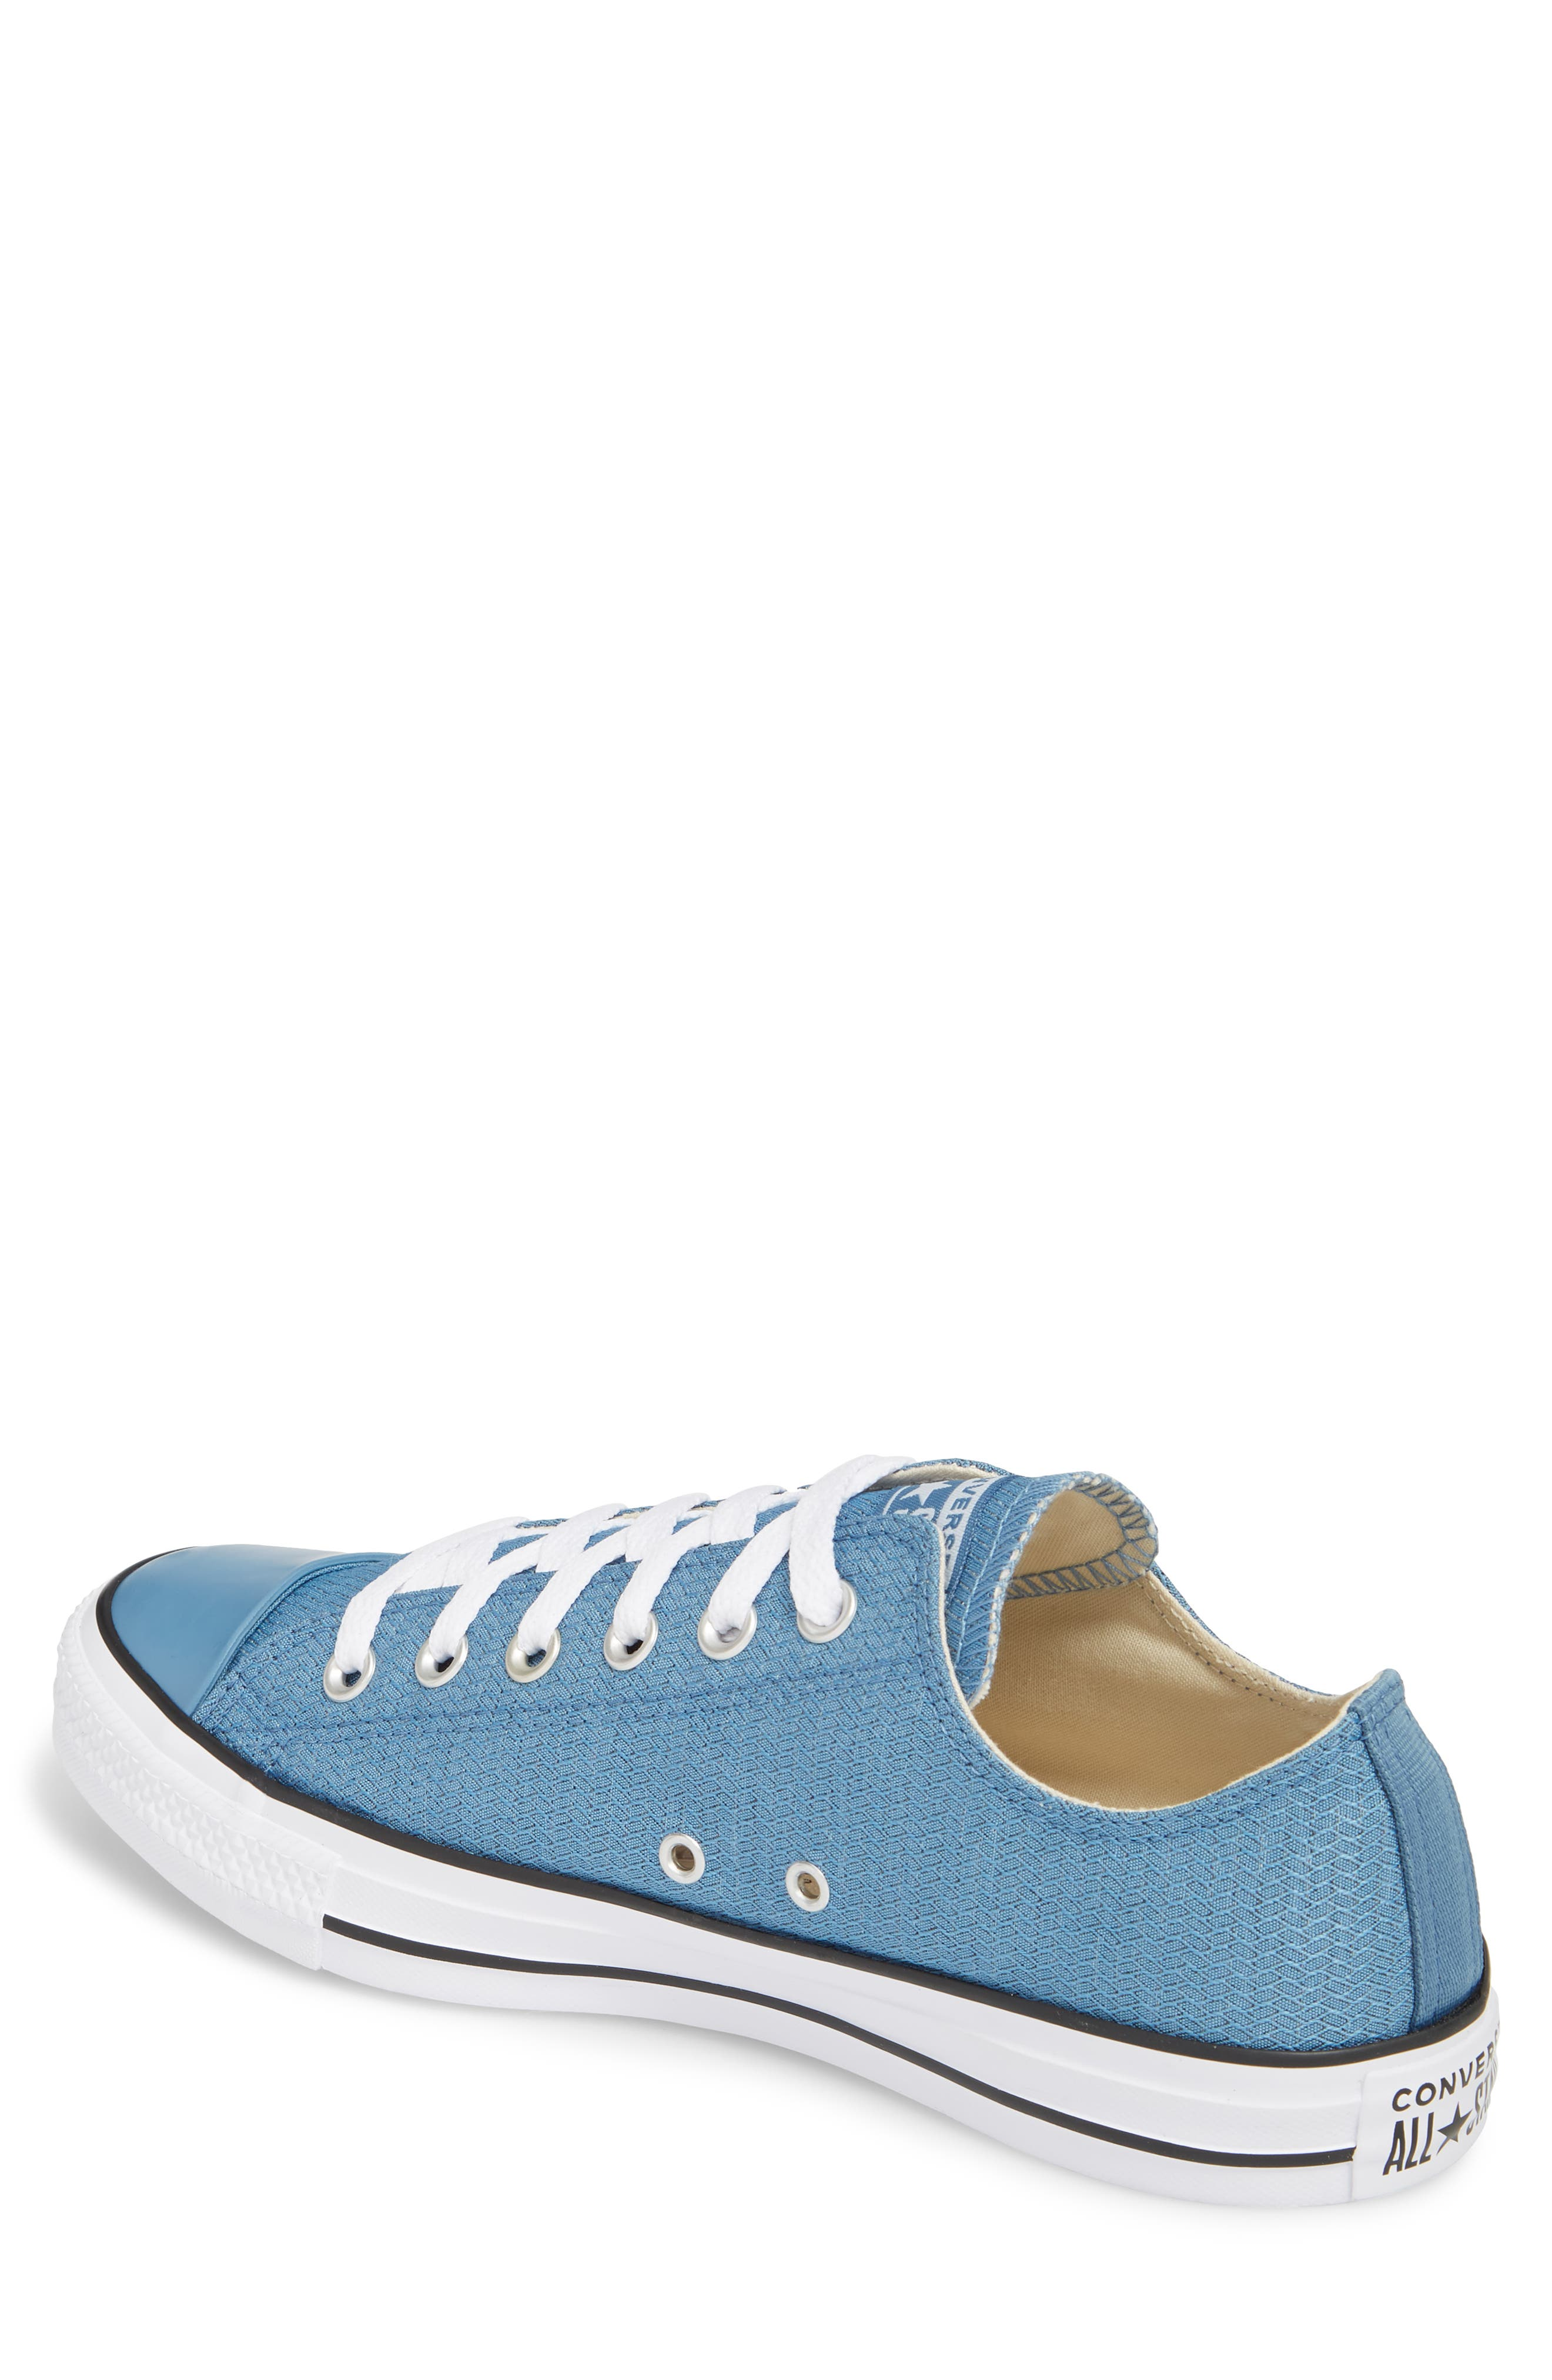 All Star<sup>®</sup> Ripstop Low Top Sneaker,                             Alternate thumbnail 2, color,                             Aegean Storm